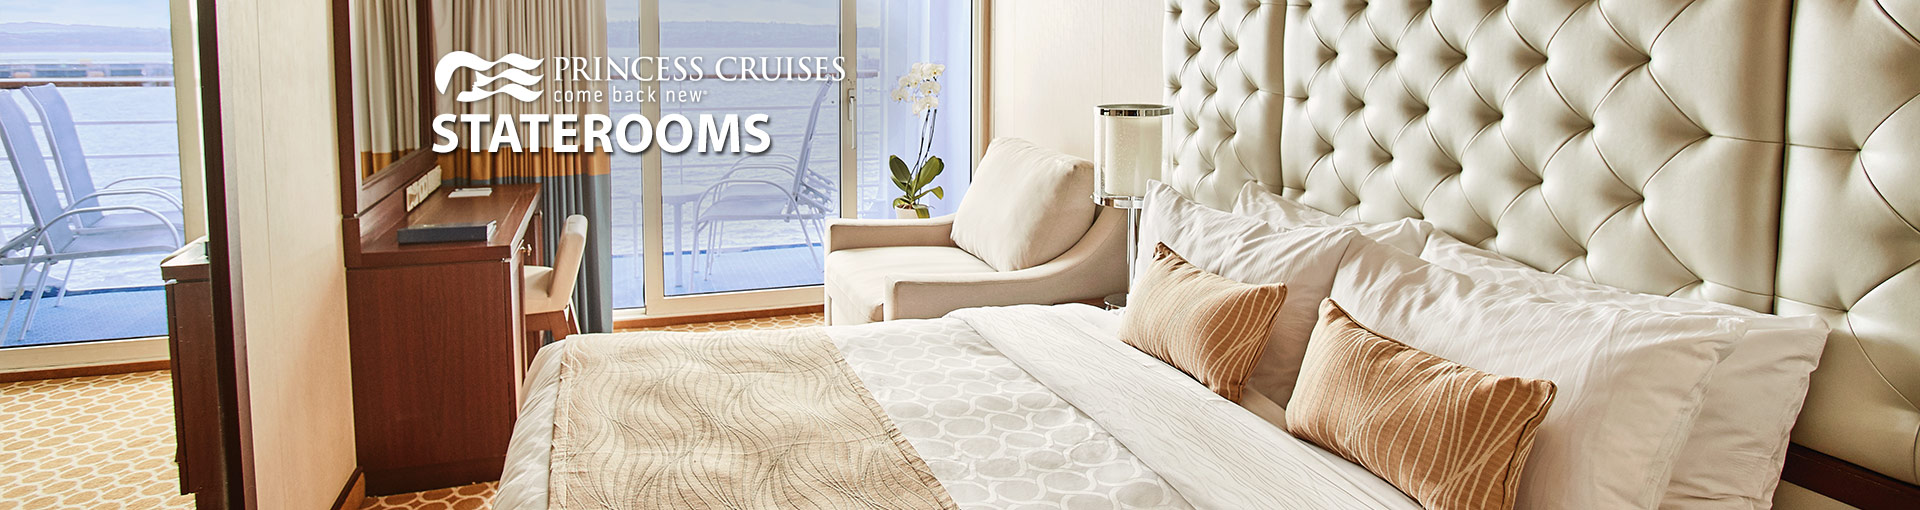 Princess Cruises Staterooms